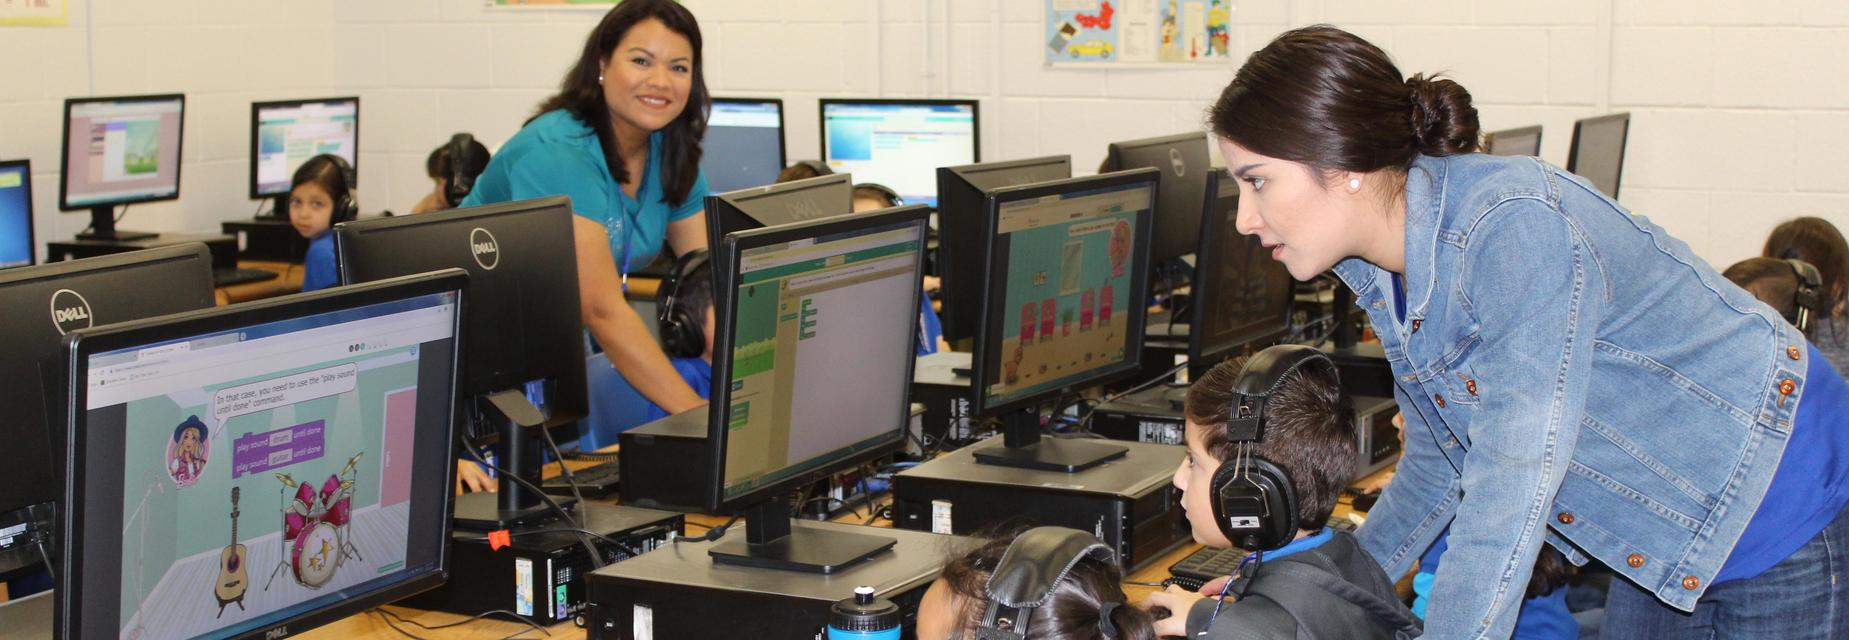 students and teachers in the computer lab